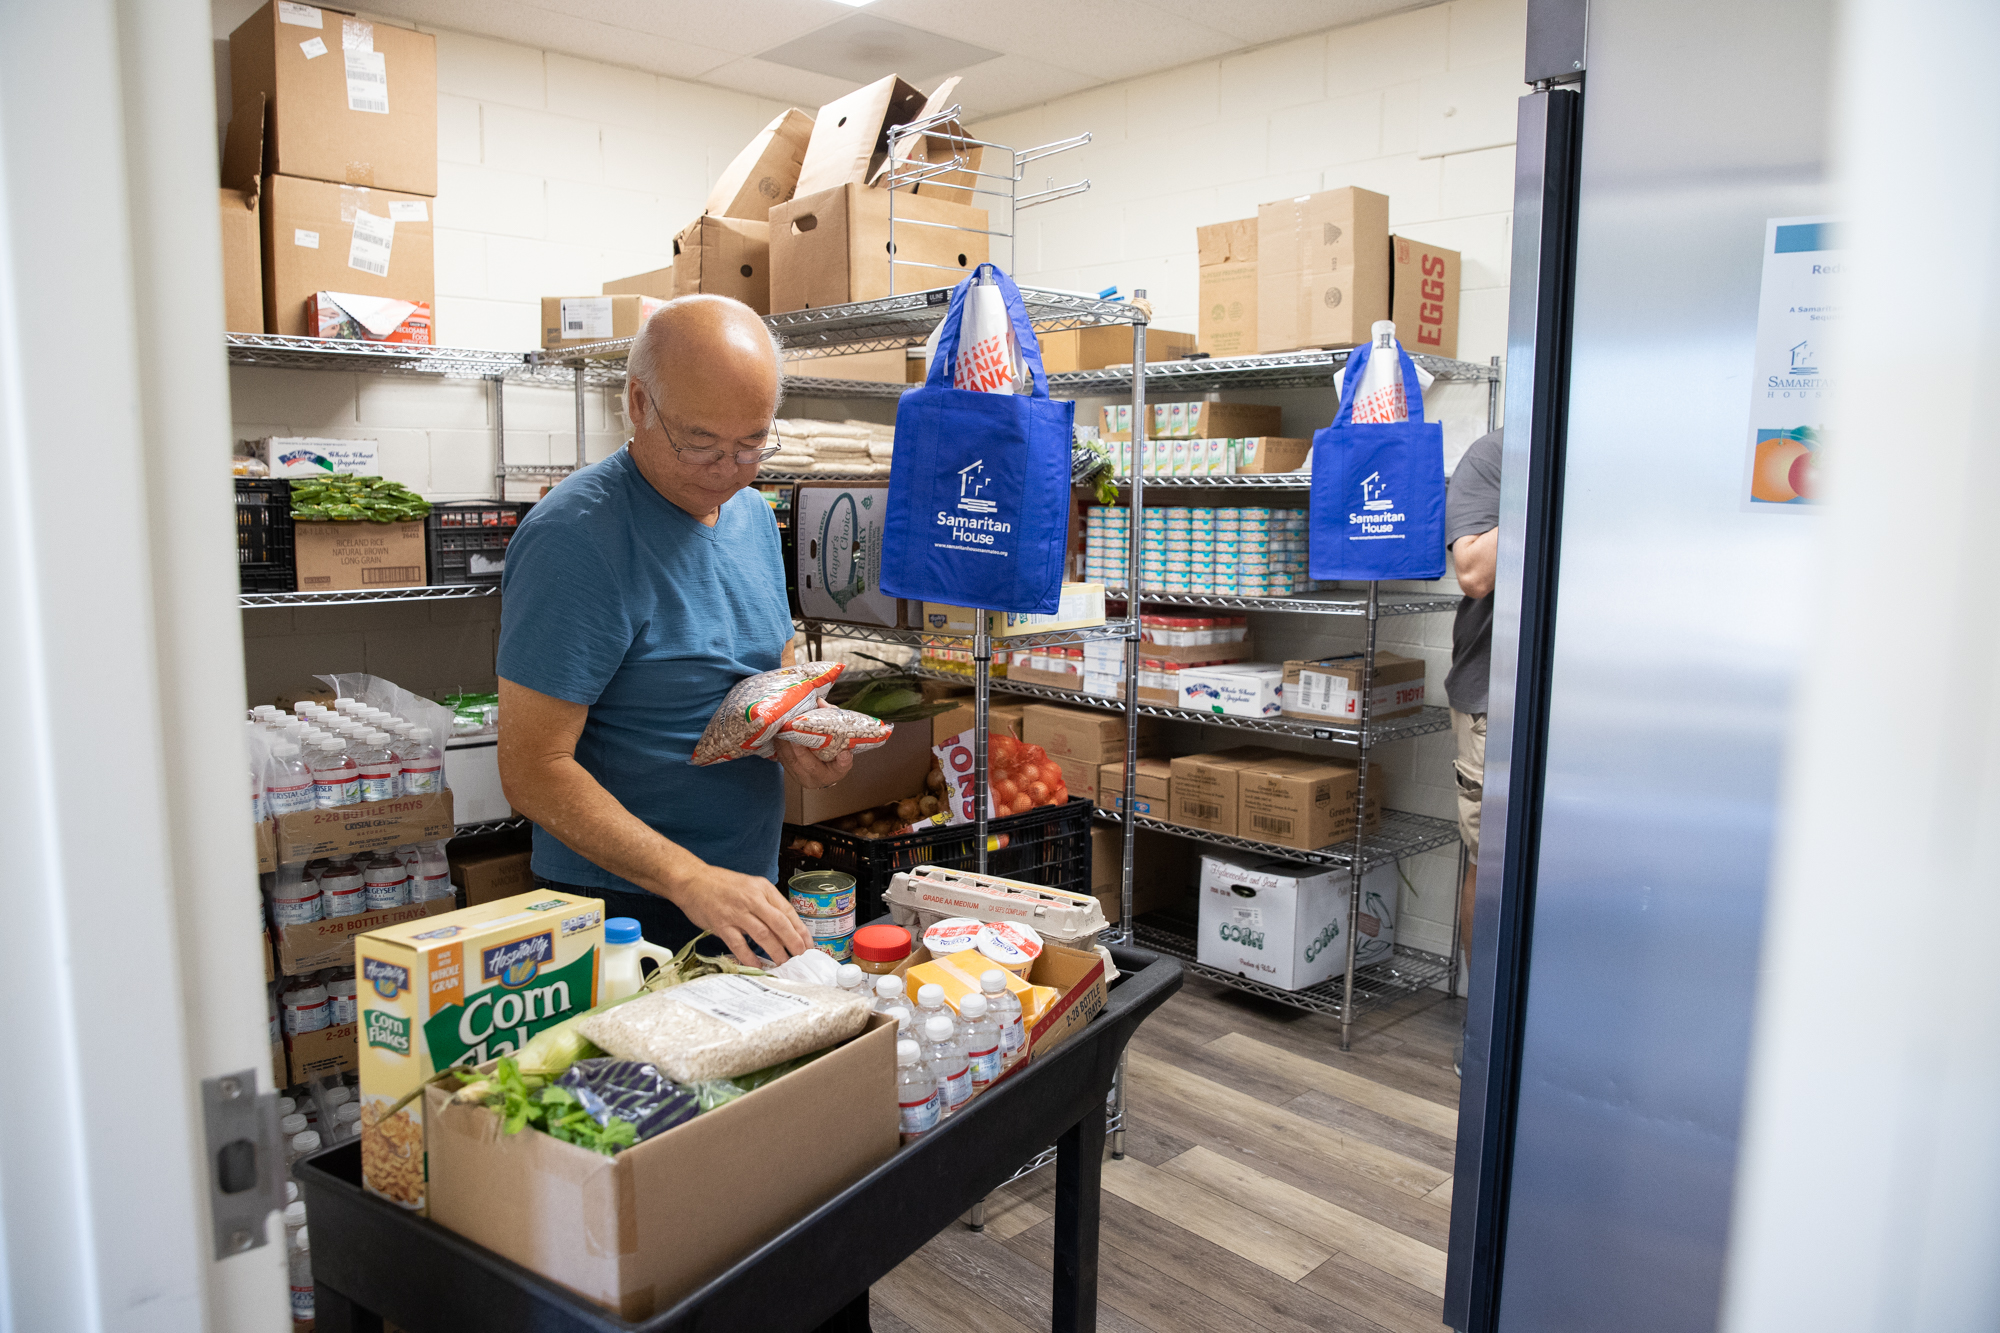 Ricky Neill, a volunteer with Samaritan House in Redwood City, prepares a food cart for a client at a food pharmacy in North Fair Oaks. (Photo by Magali Gauthier/The Almanac.)